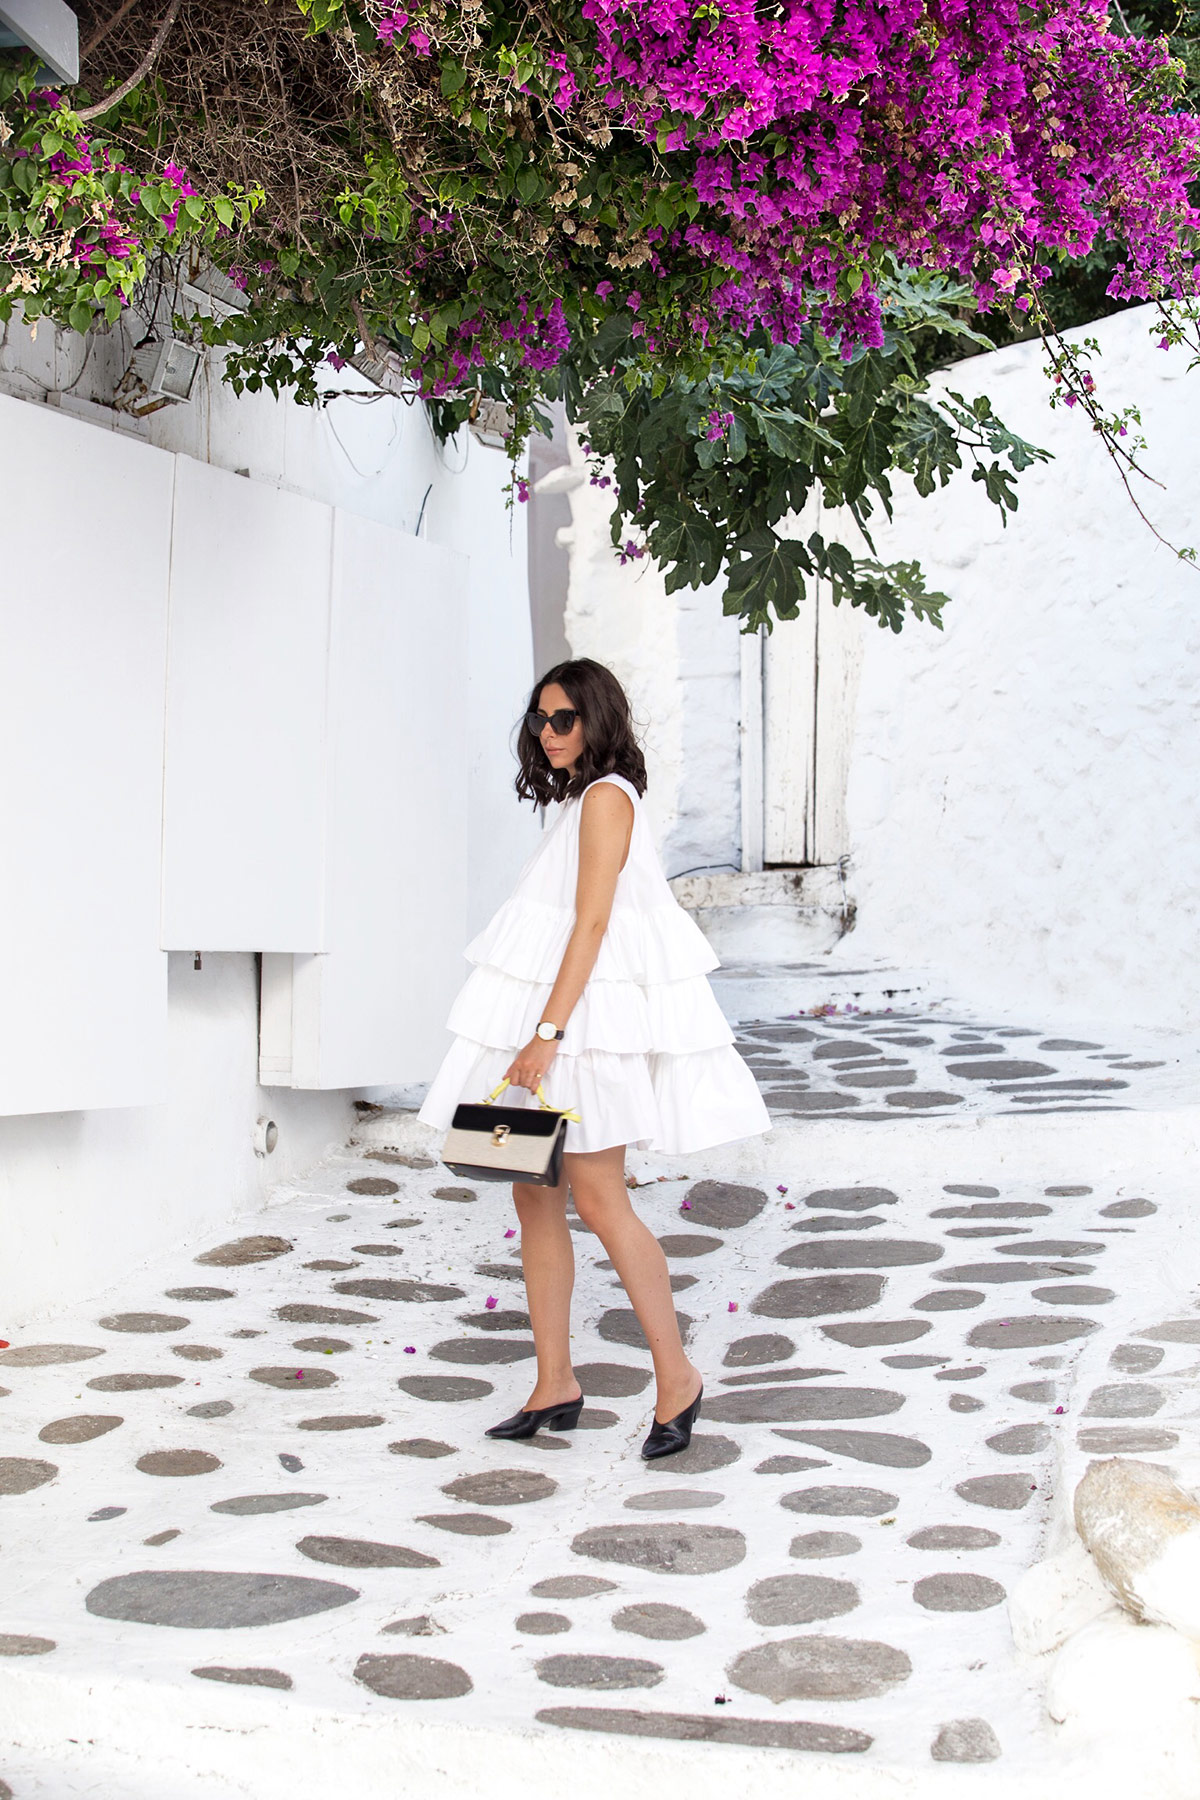 Stella Asteria, fashion & lifestyle blogger, wearing a little white frilled dress in Mykonos Greece